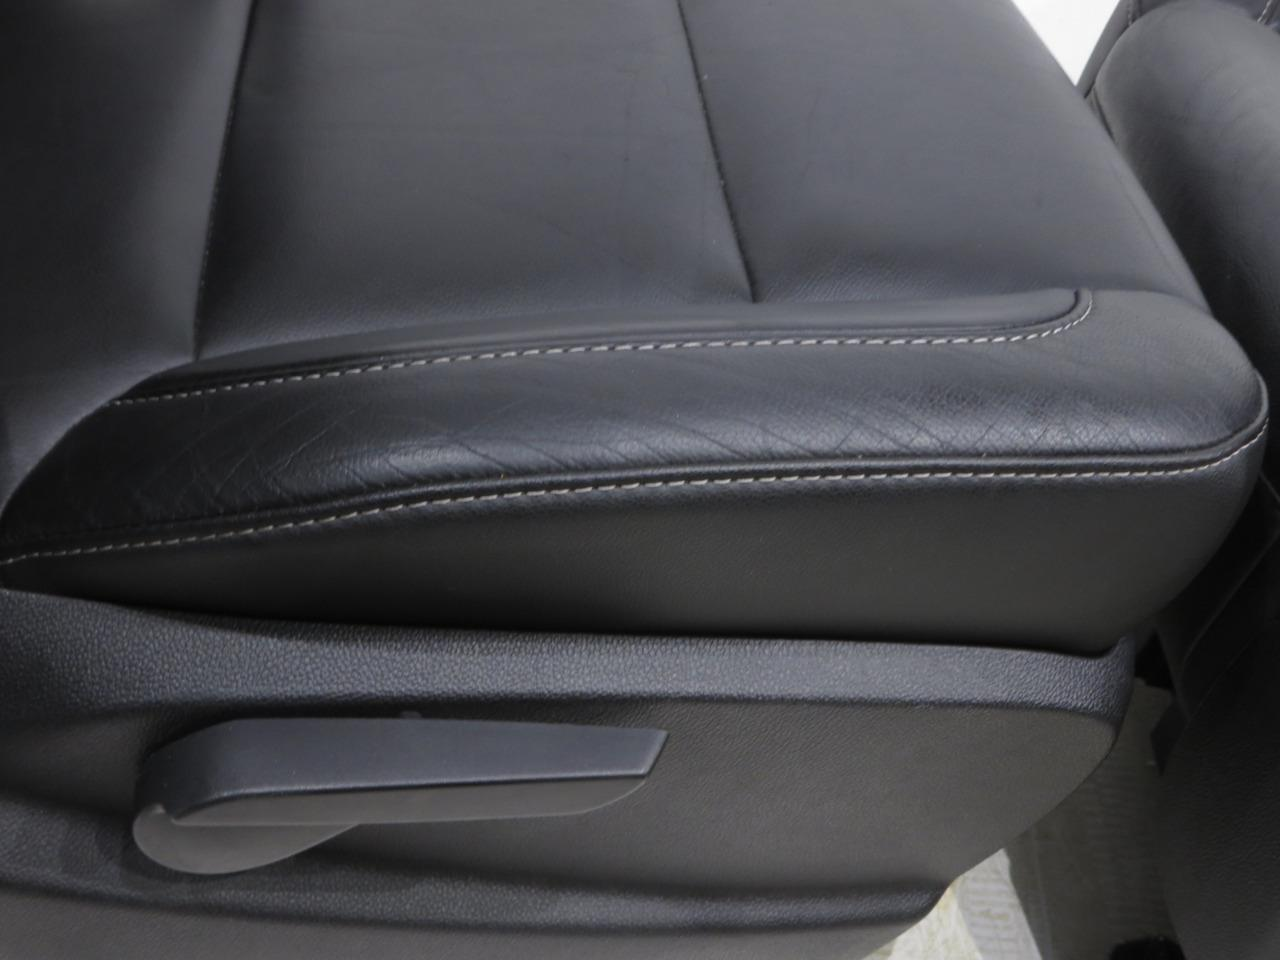 Replacement Chevy Silverado Gmc Sierra Oem Leather Seats ...